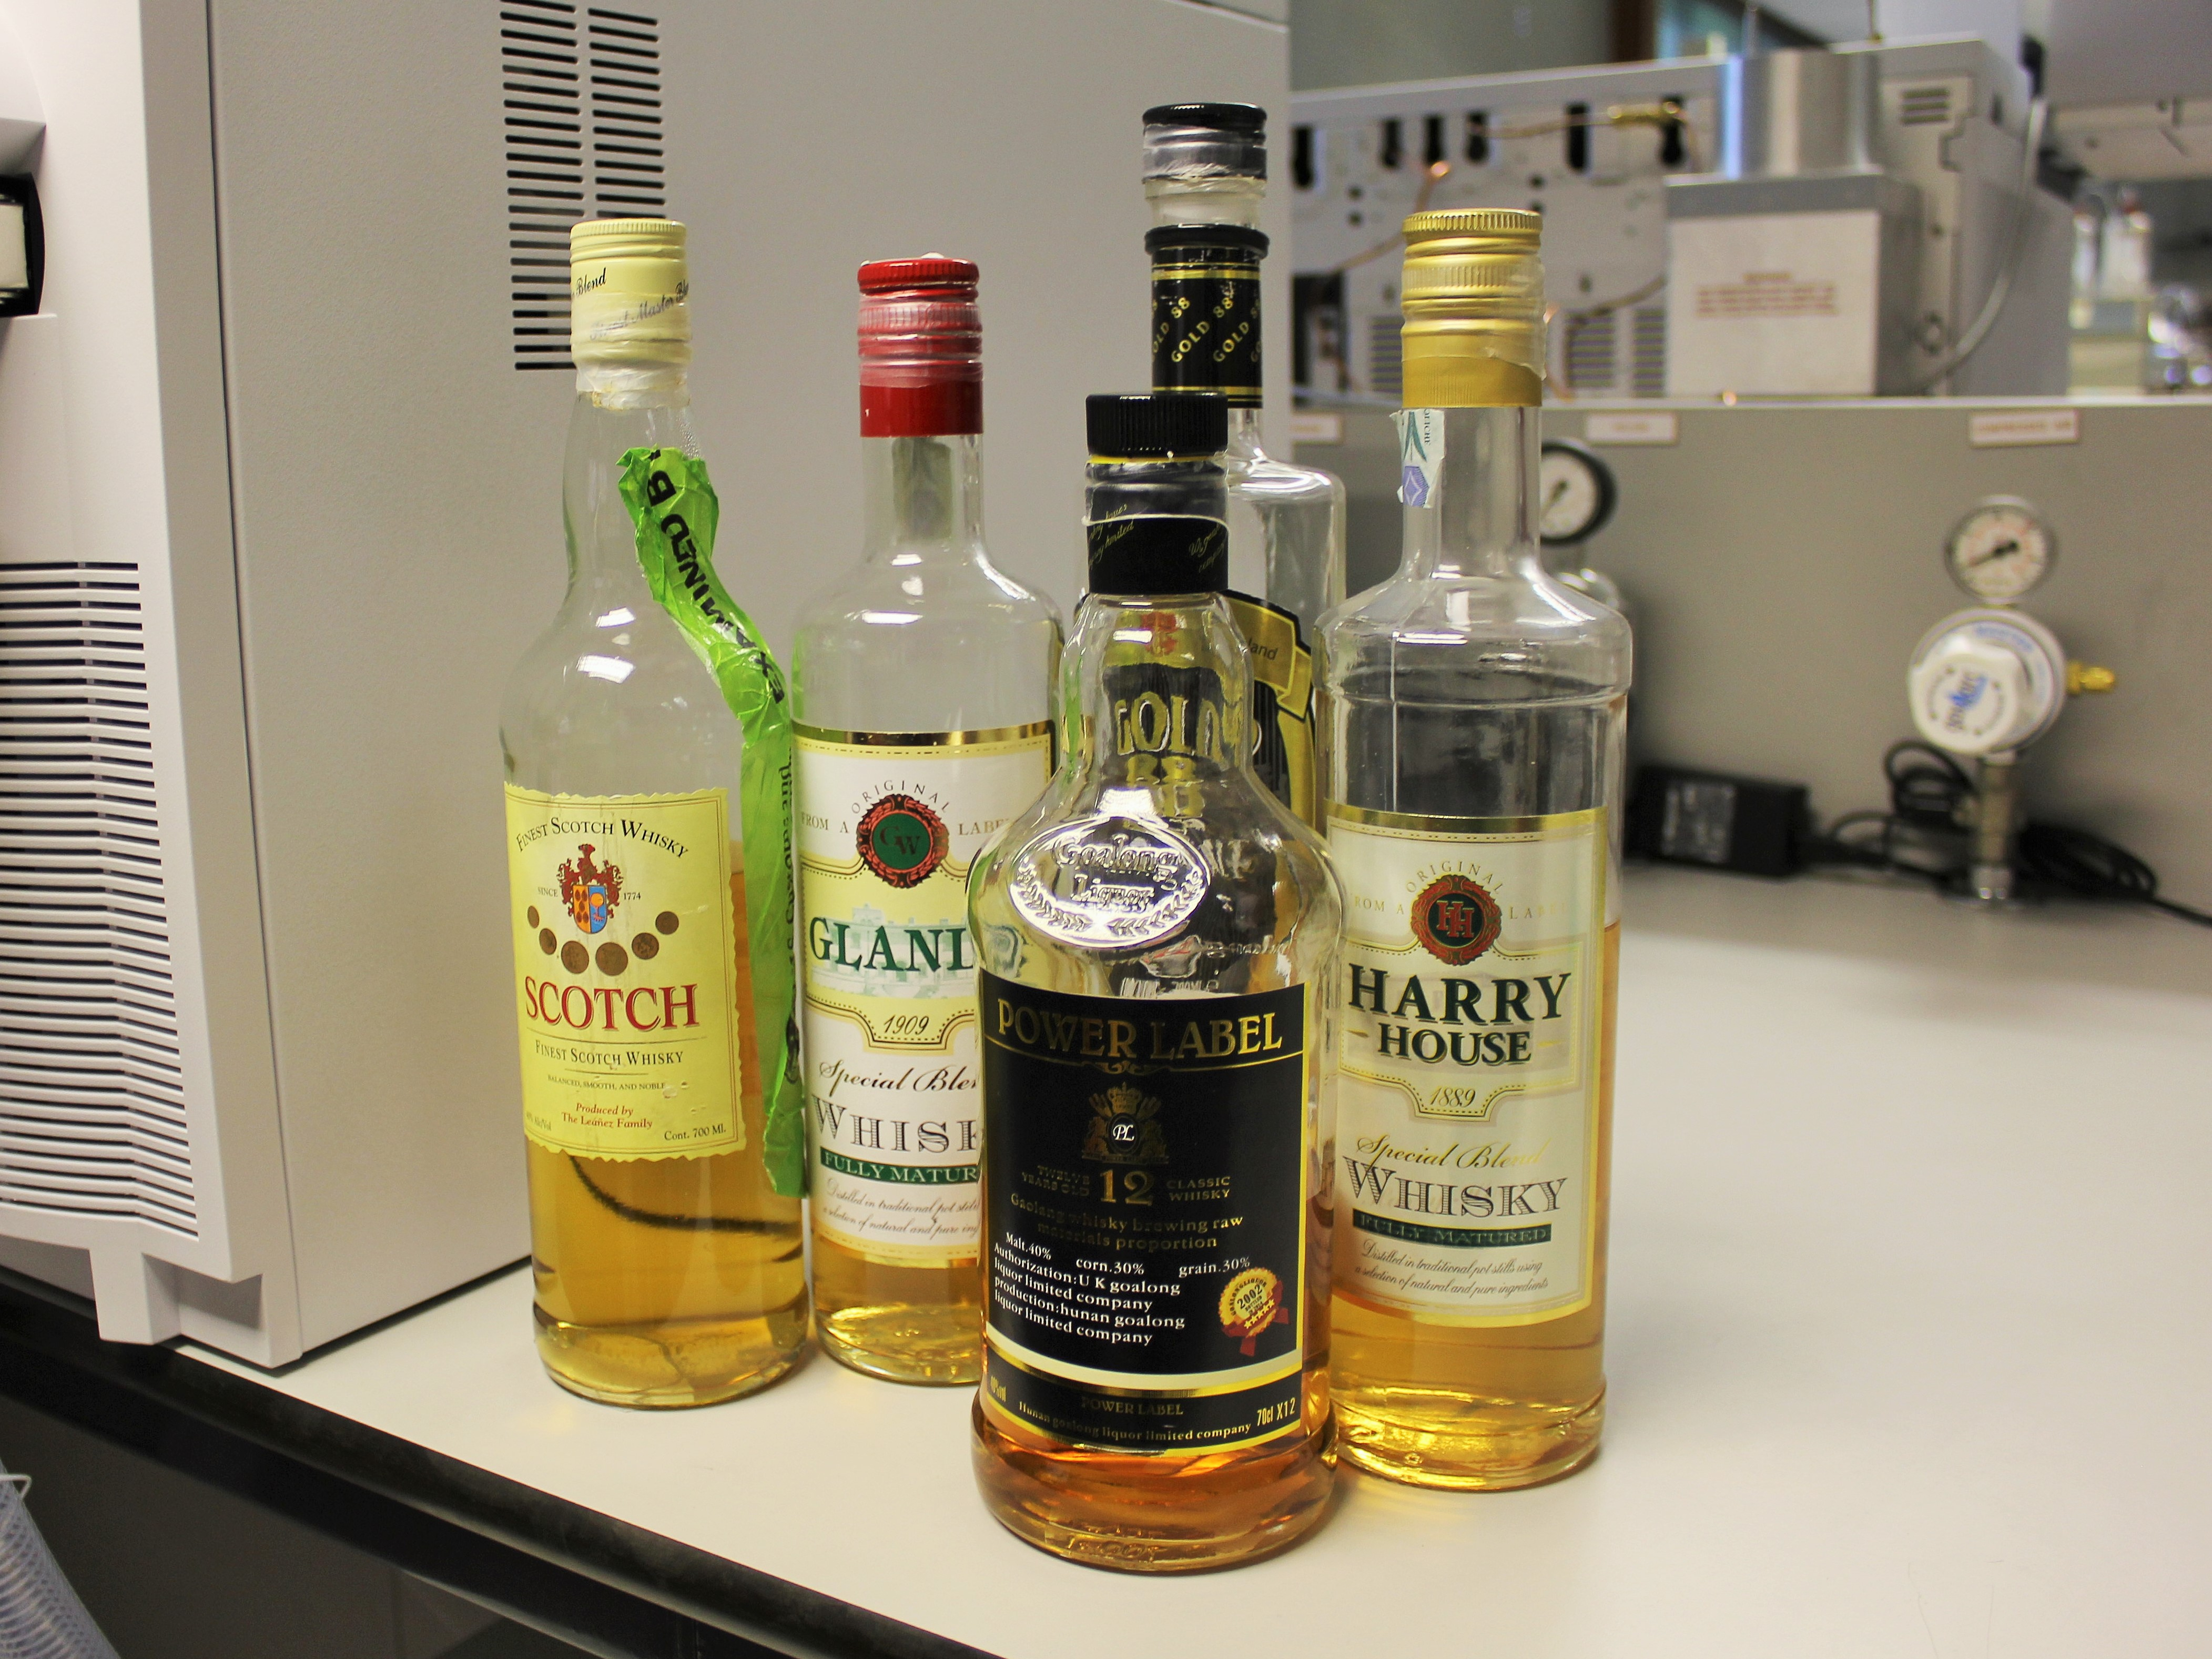 Authenticity-Bottles-and-UPLC-MS